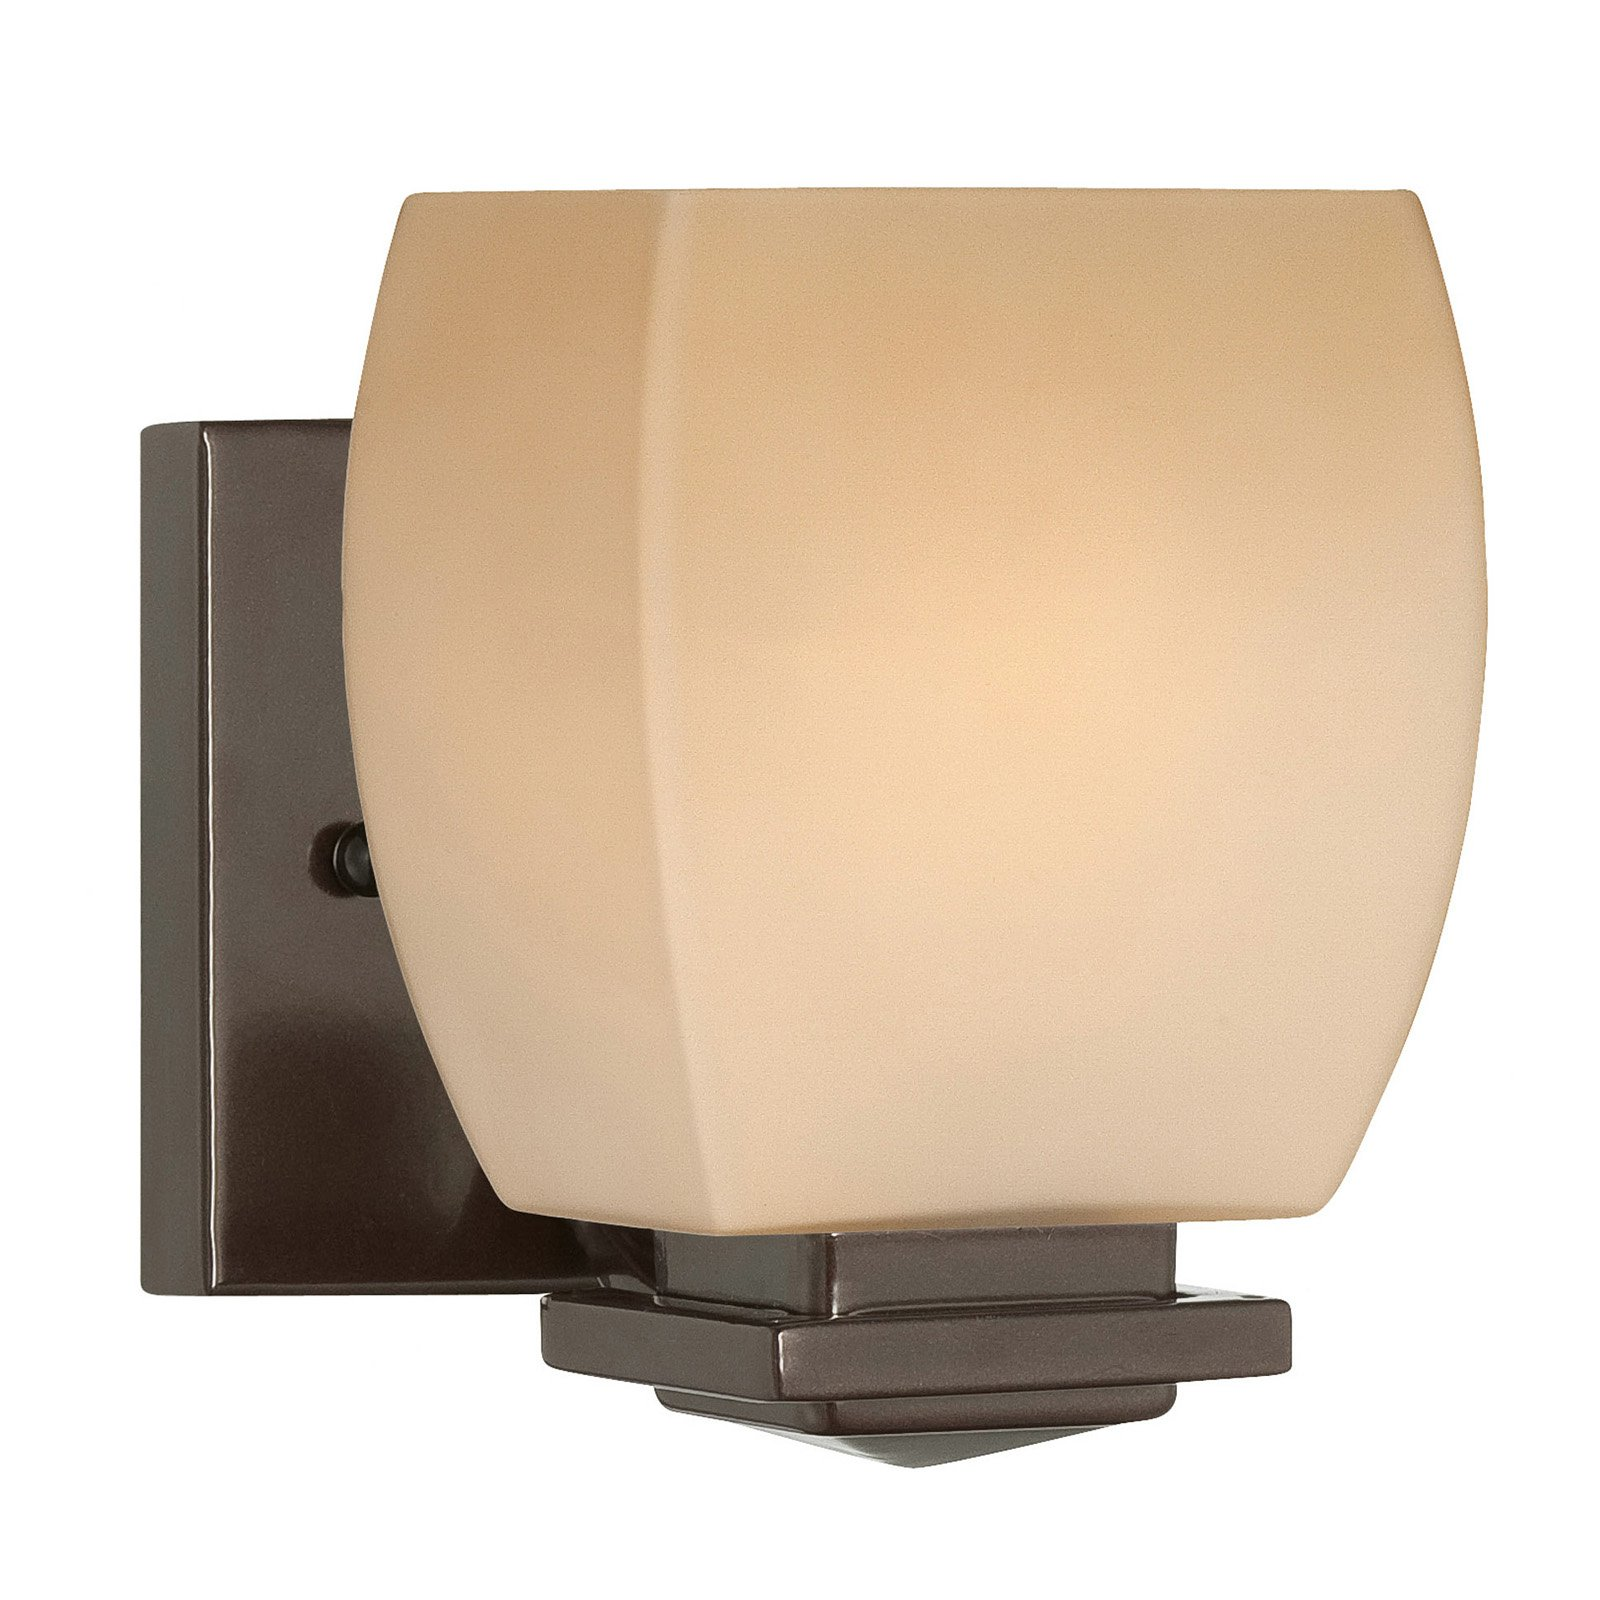 Lite Source Orazio LS-16961 Wall Lamp by Lite Source